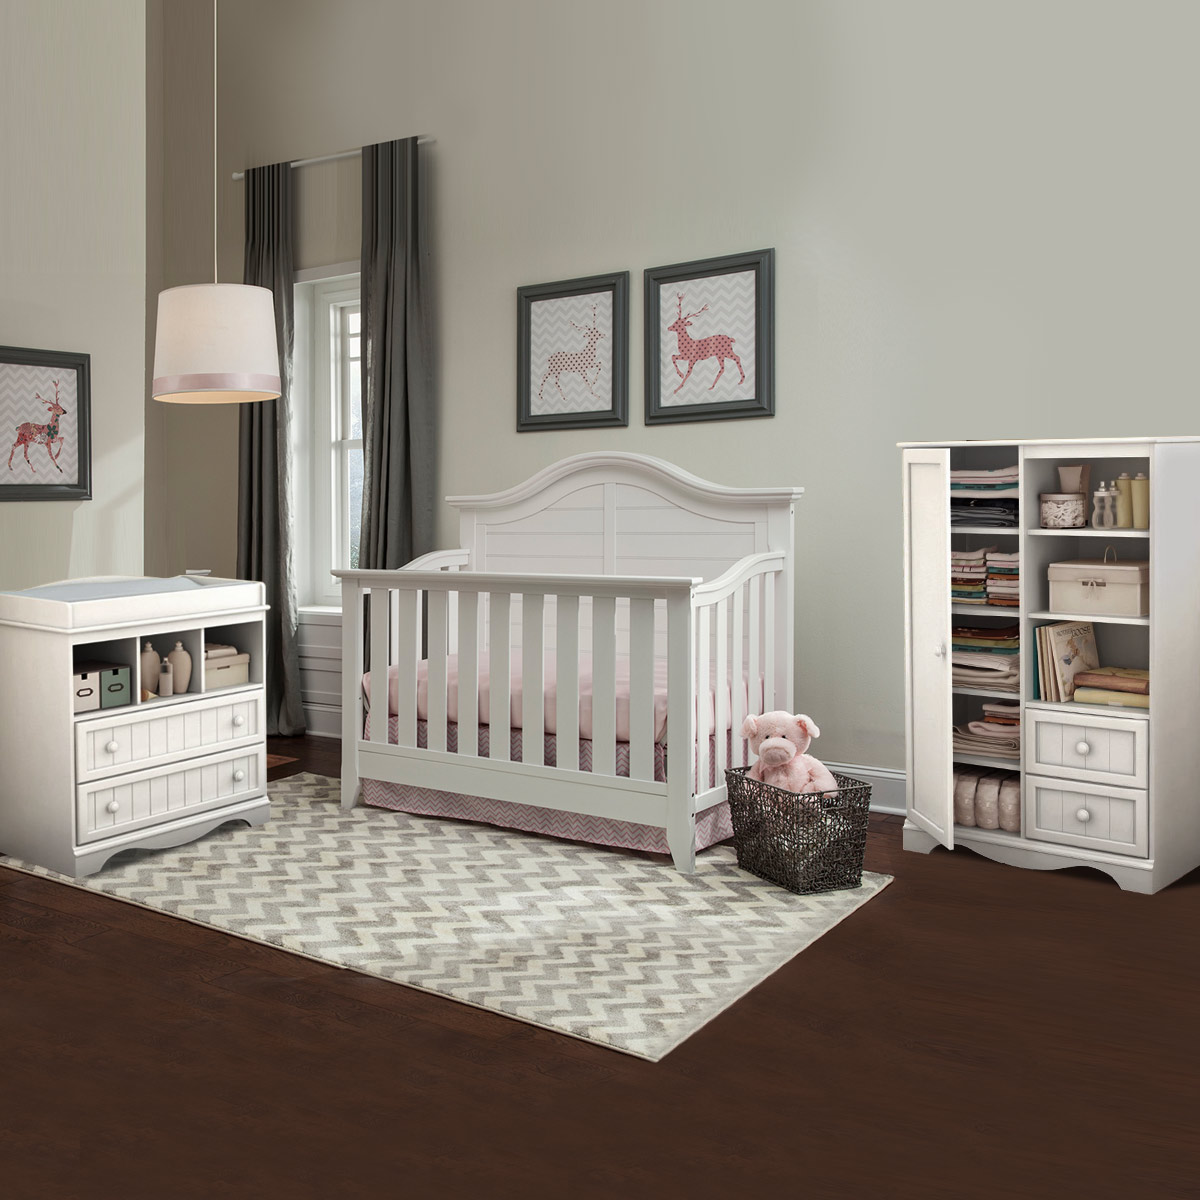 Thomasville Southern Dunes 3 Piece Nursery Set   Lifestyle Crib, Savannah Changing  Table U0026 Door Chest In White FREE SHIPPING